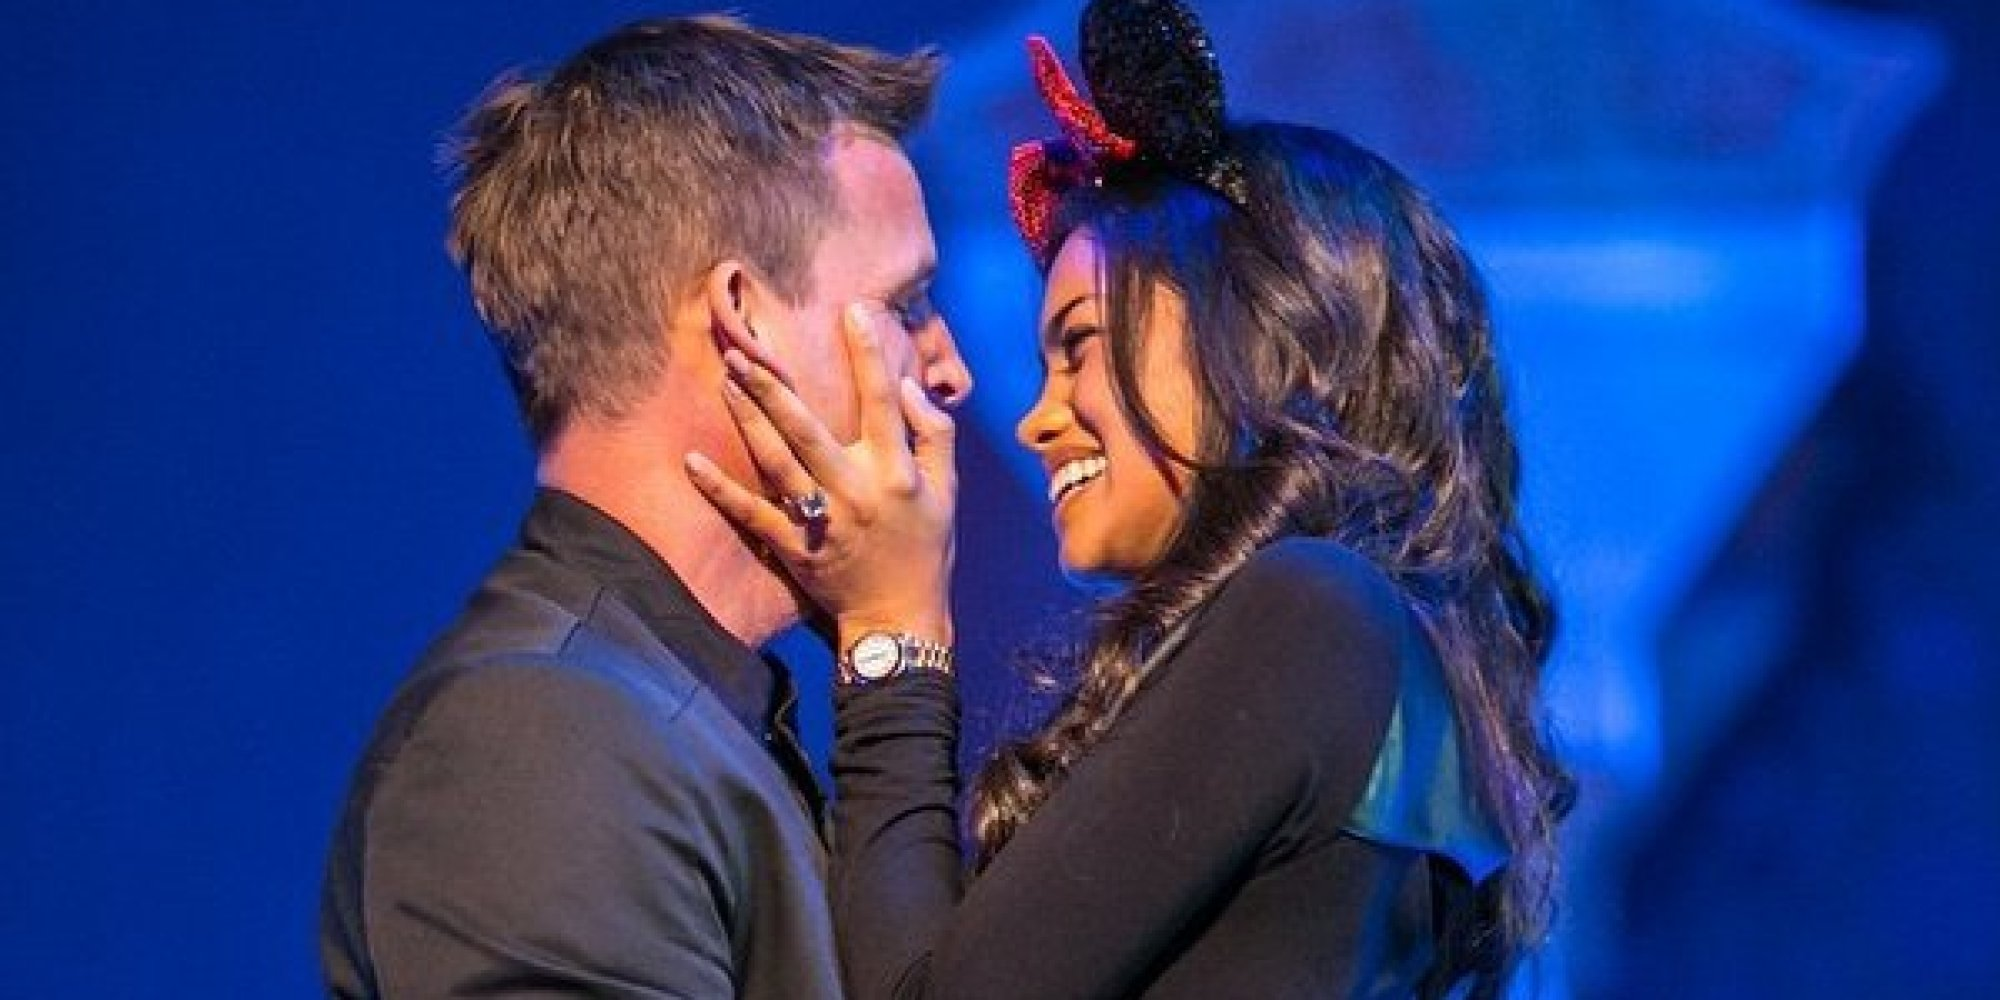 Rob Dyrdek Goes Big With A Magical Disney Marriage Proposal | HuffPost